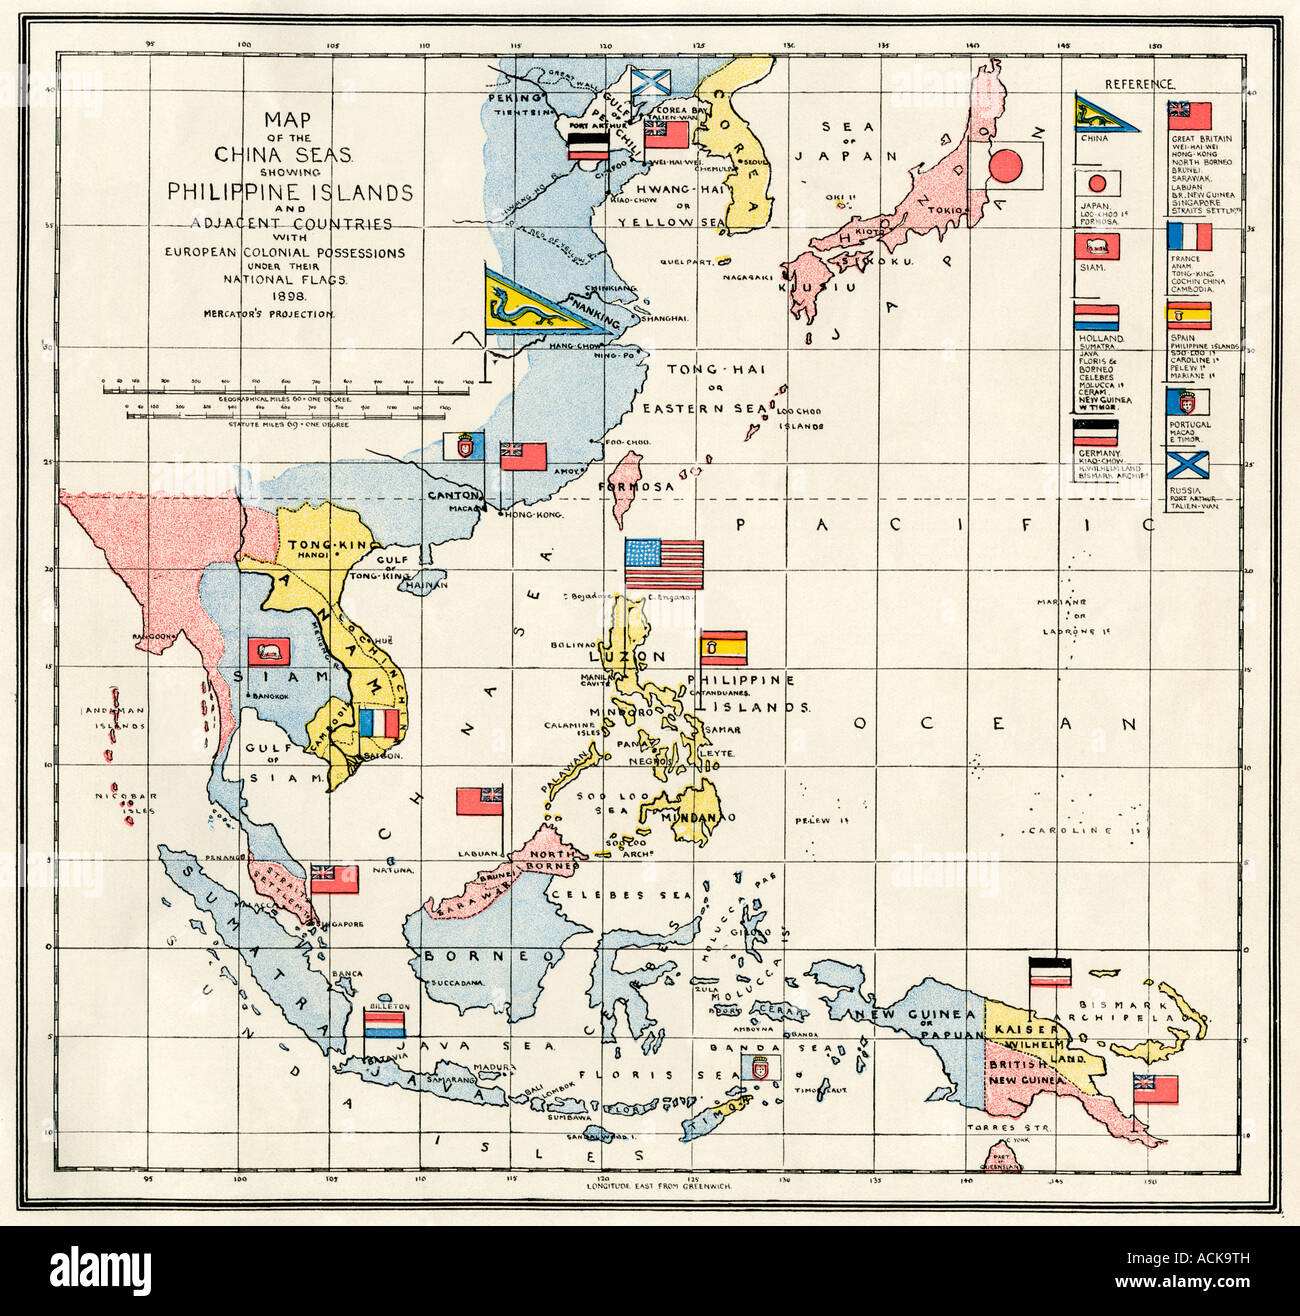 Map of the China Sea the Philippines and European colonies in the